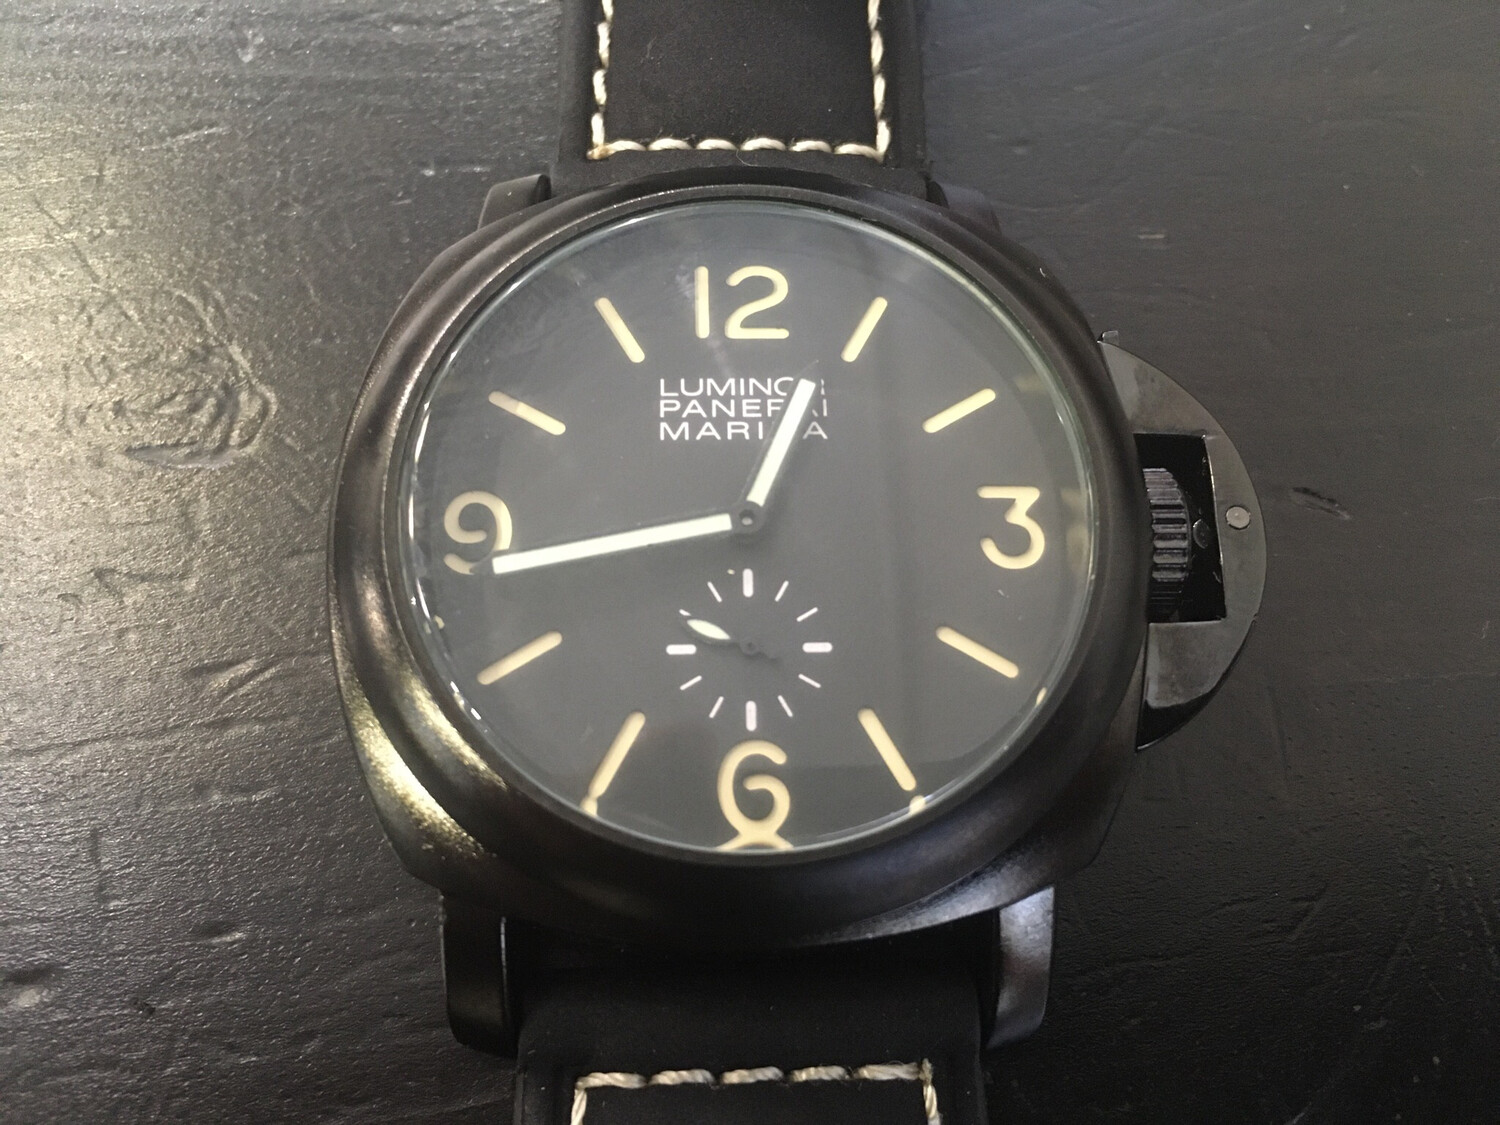 Panerai Marina watch men's quartz